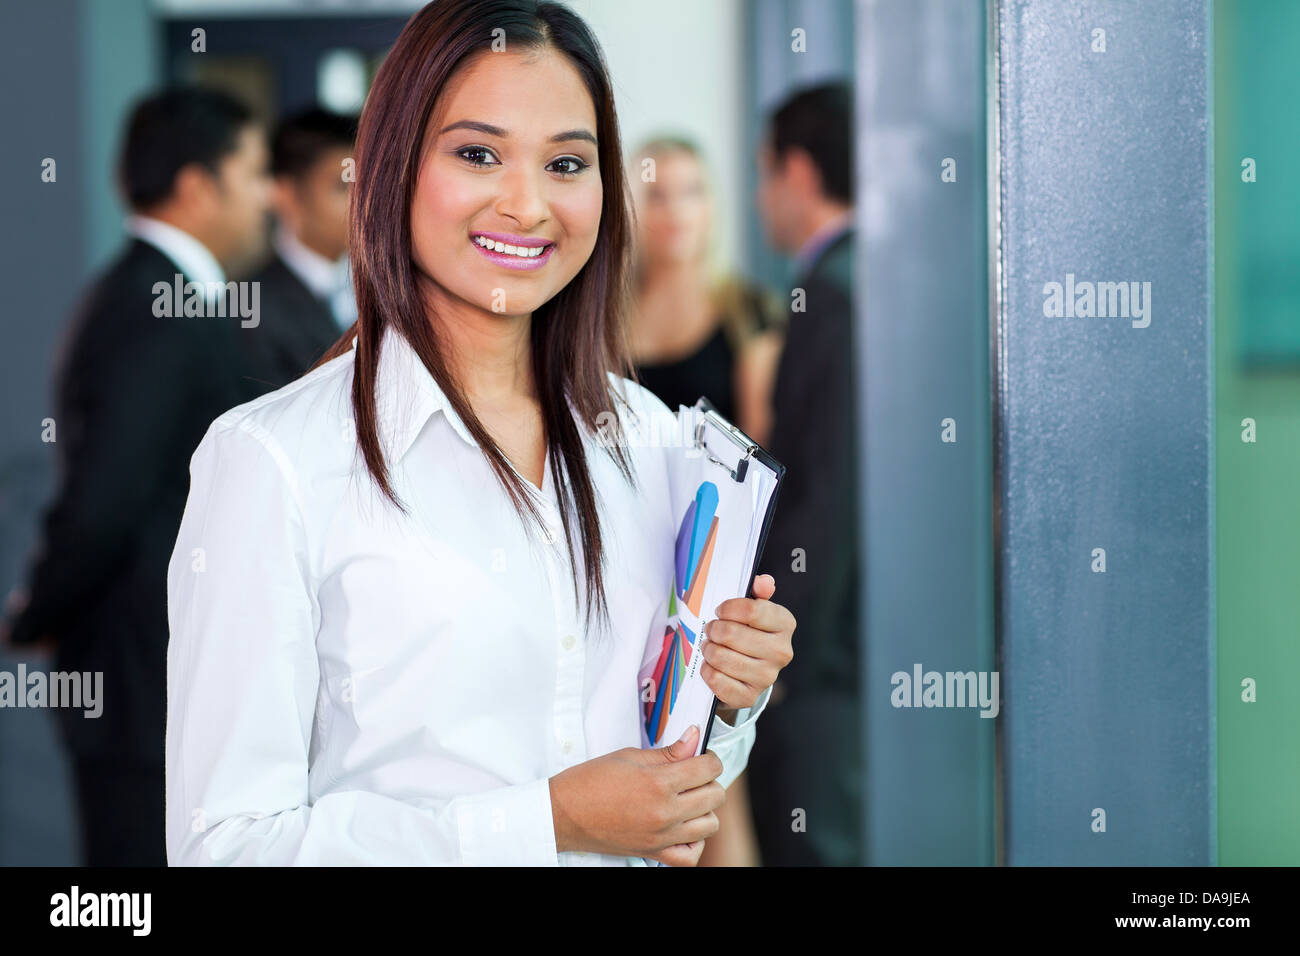 portrait of attractive secretary standing in meeting room holding a clipboard - Stock Image